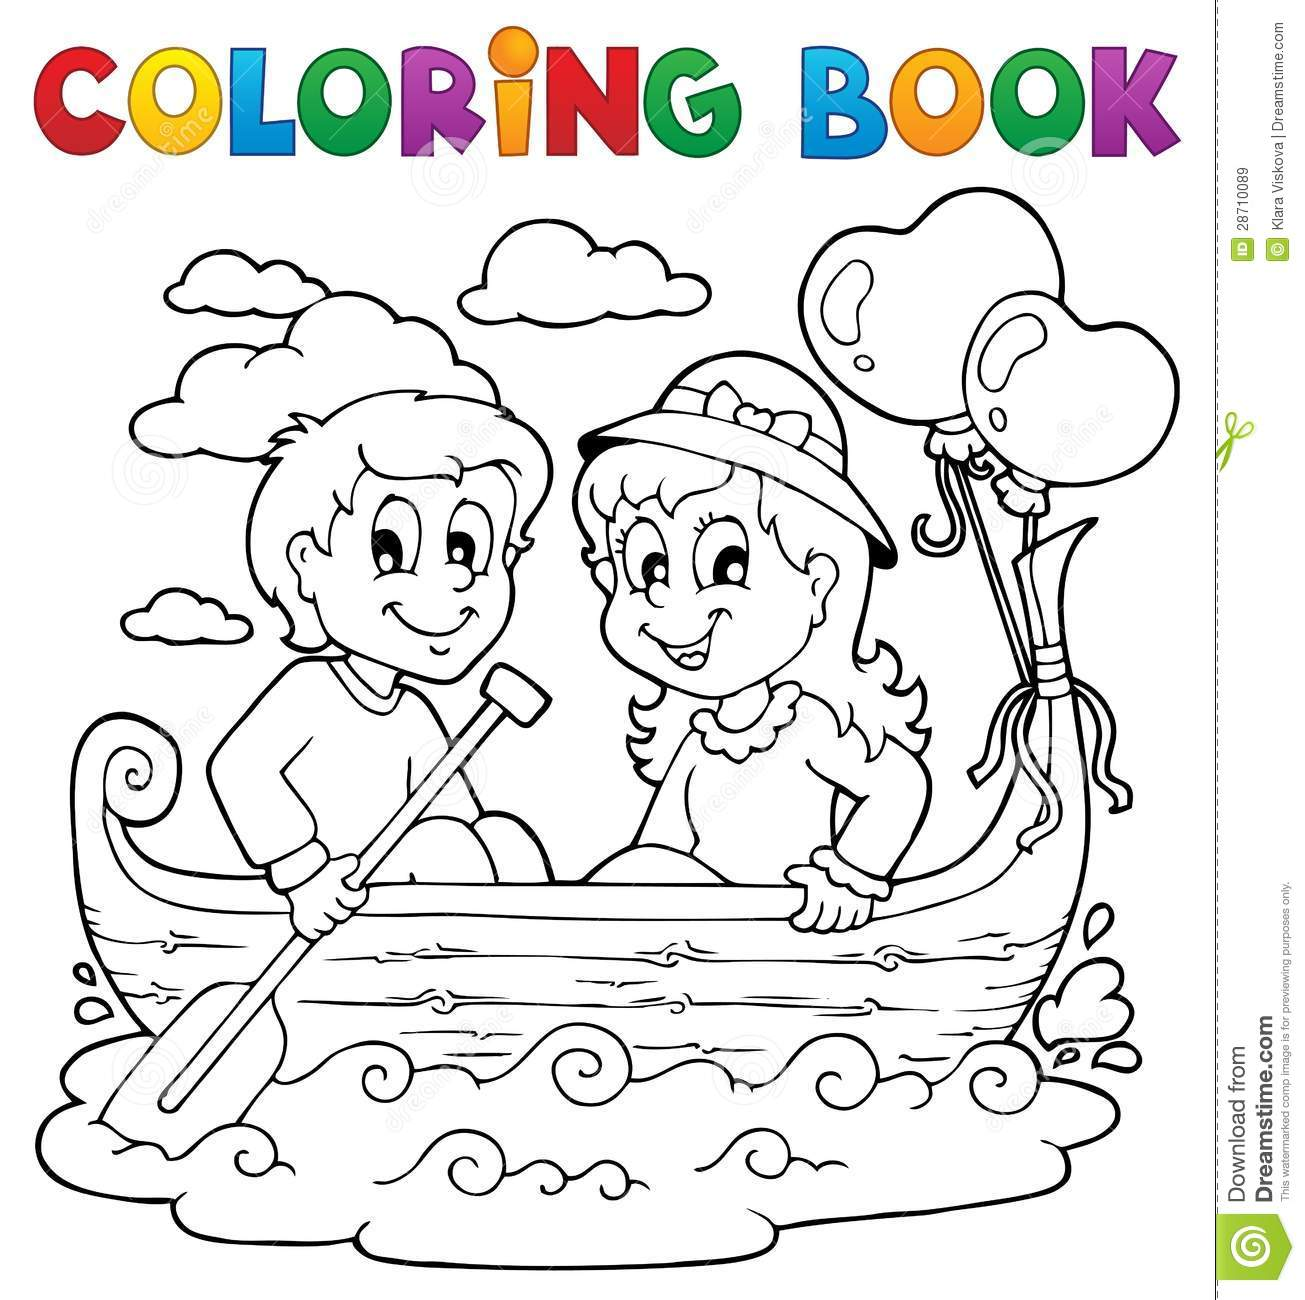 the angel and fairy coloring book 8 - Cloring Book